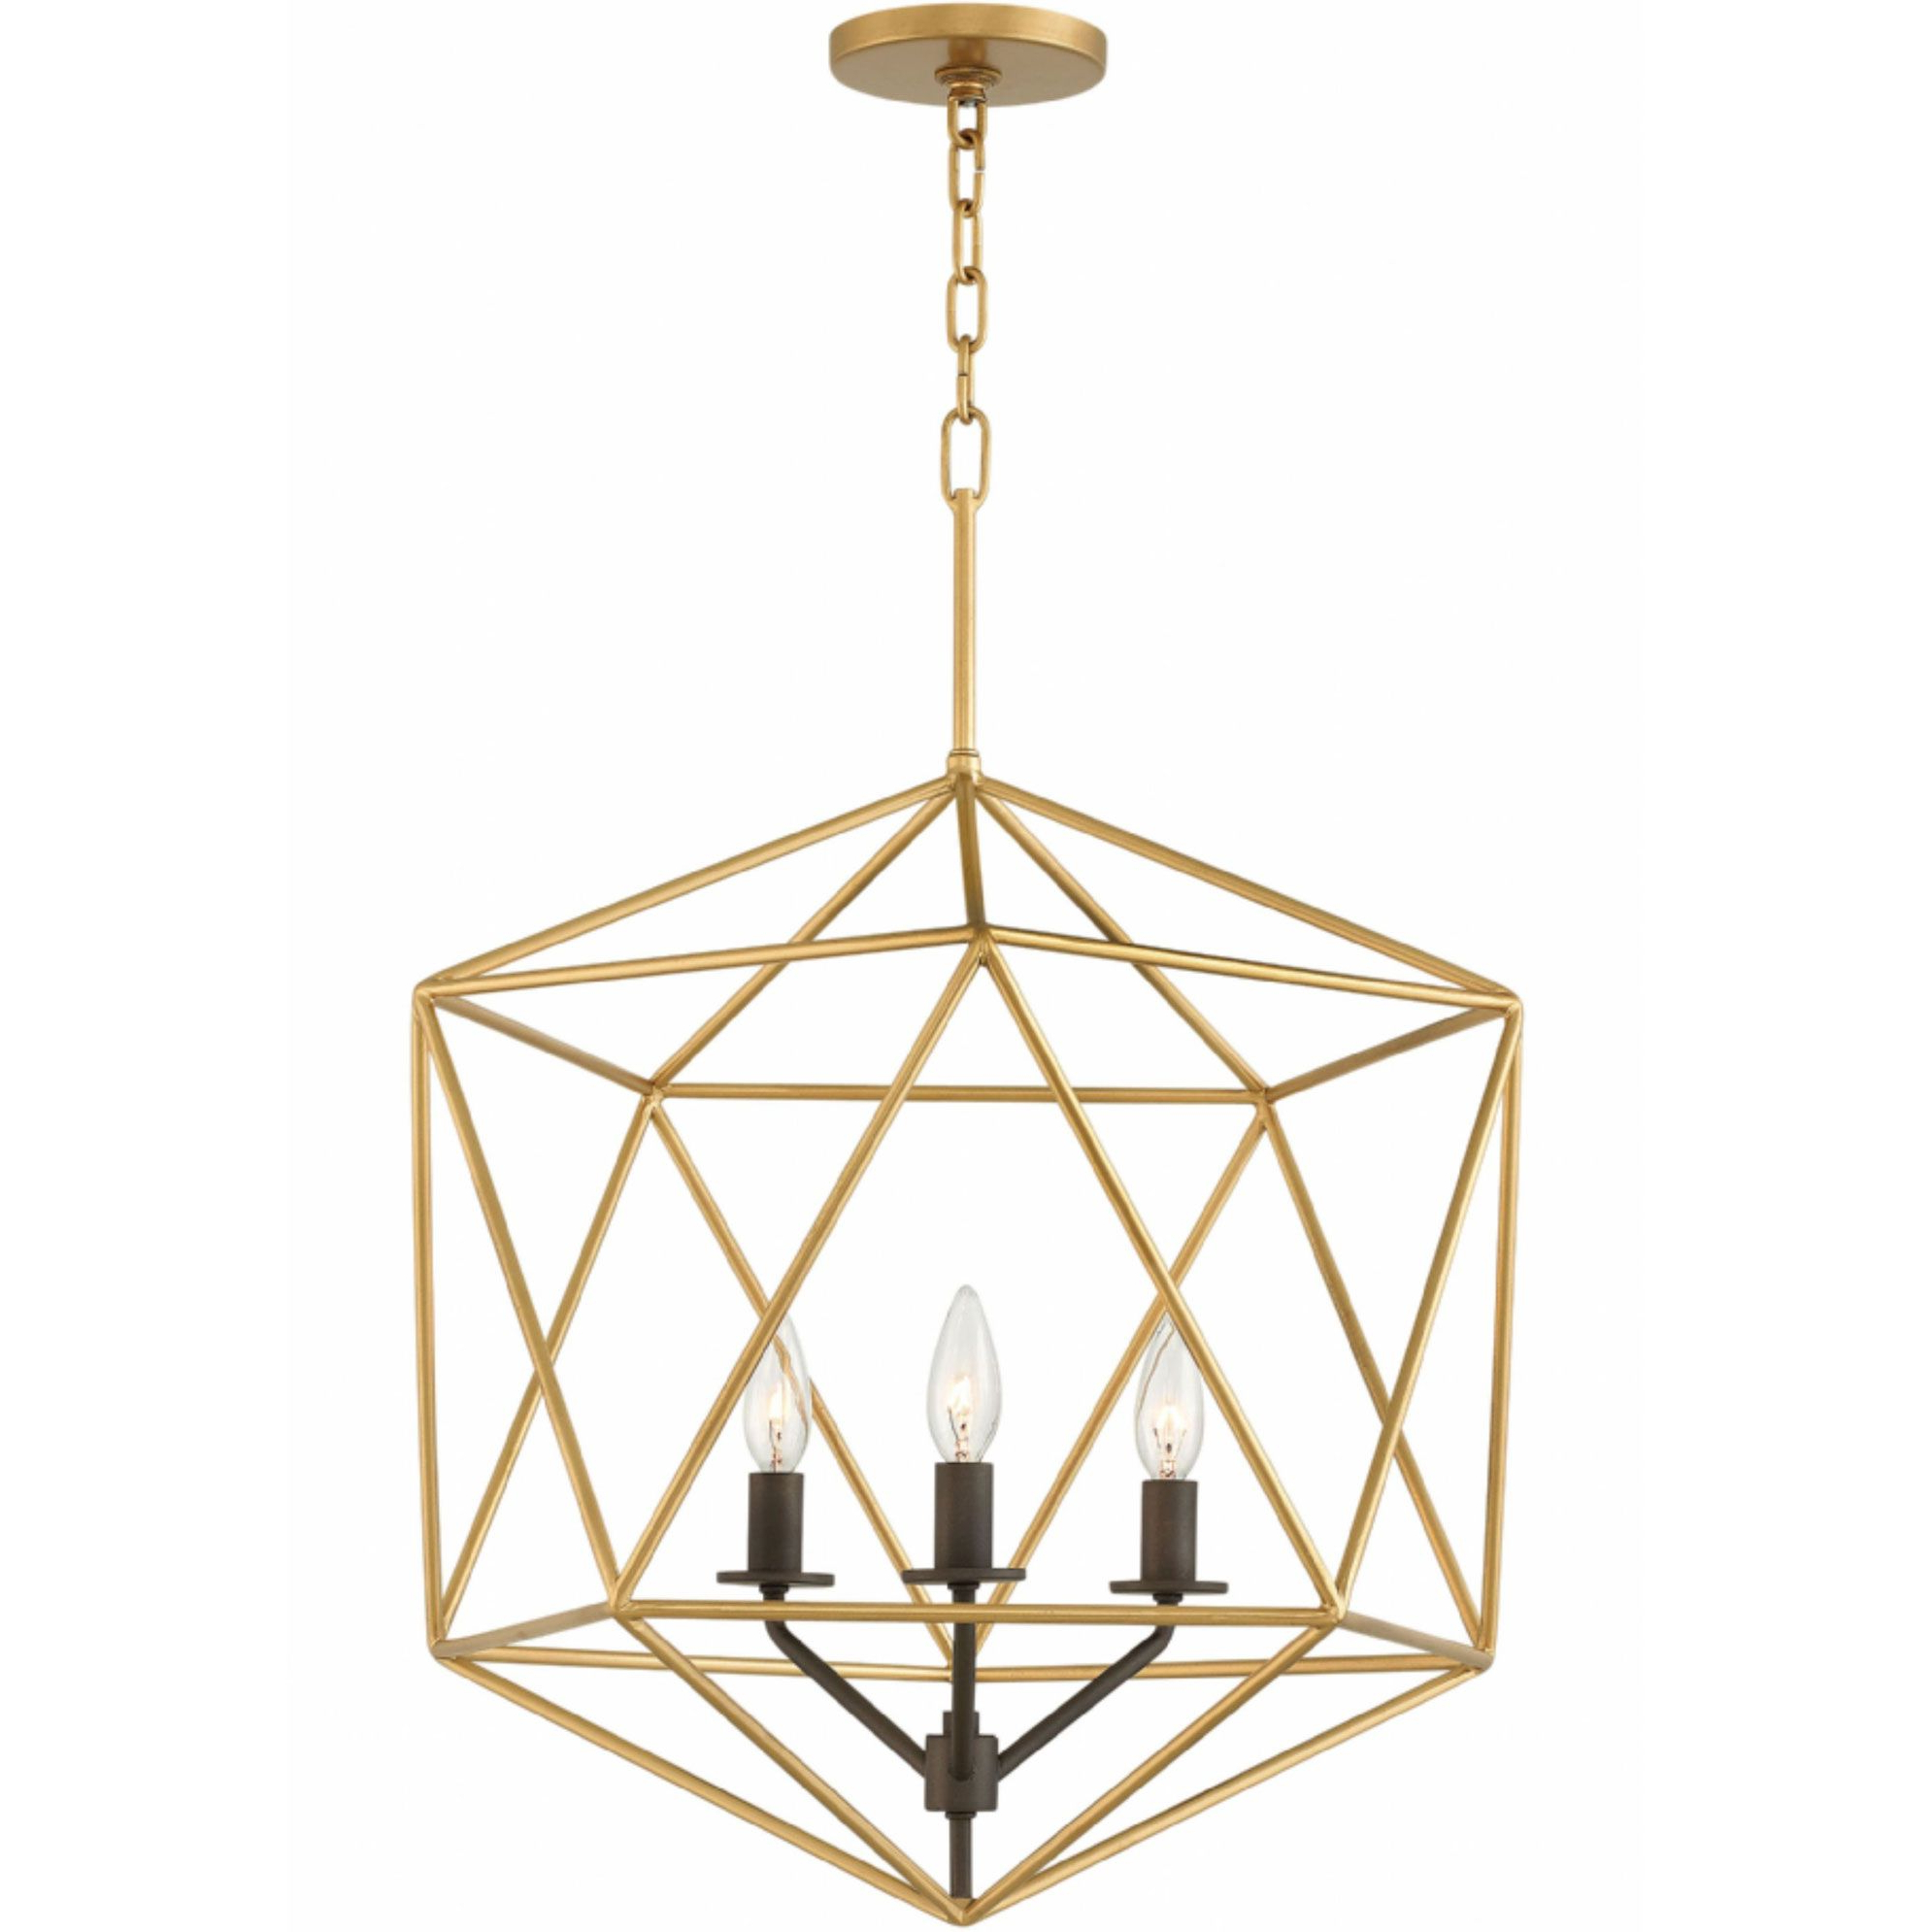 Fashionable Pinterest – Пинтерест Pertaining To Tiana 4 Light Geometric Chandeliers (View 12 of 25)